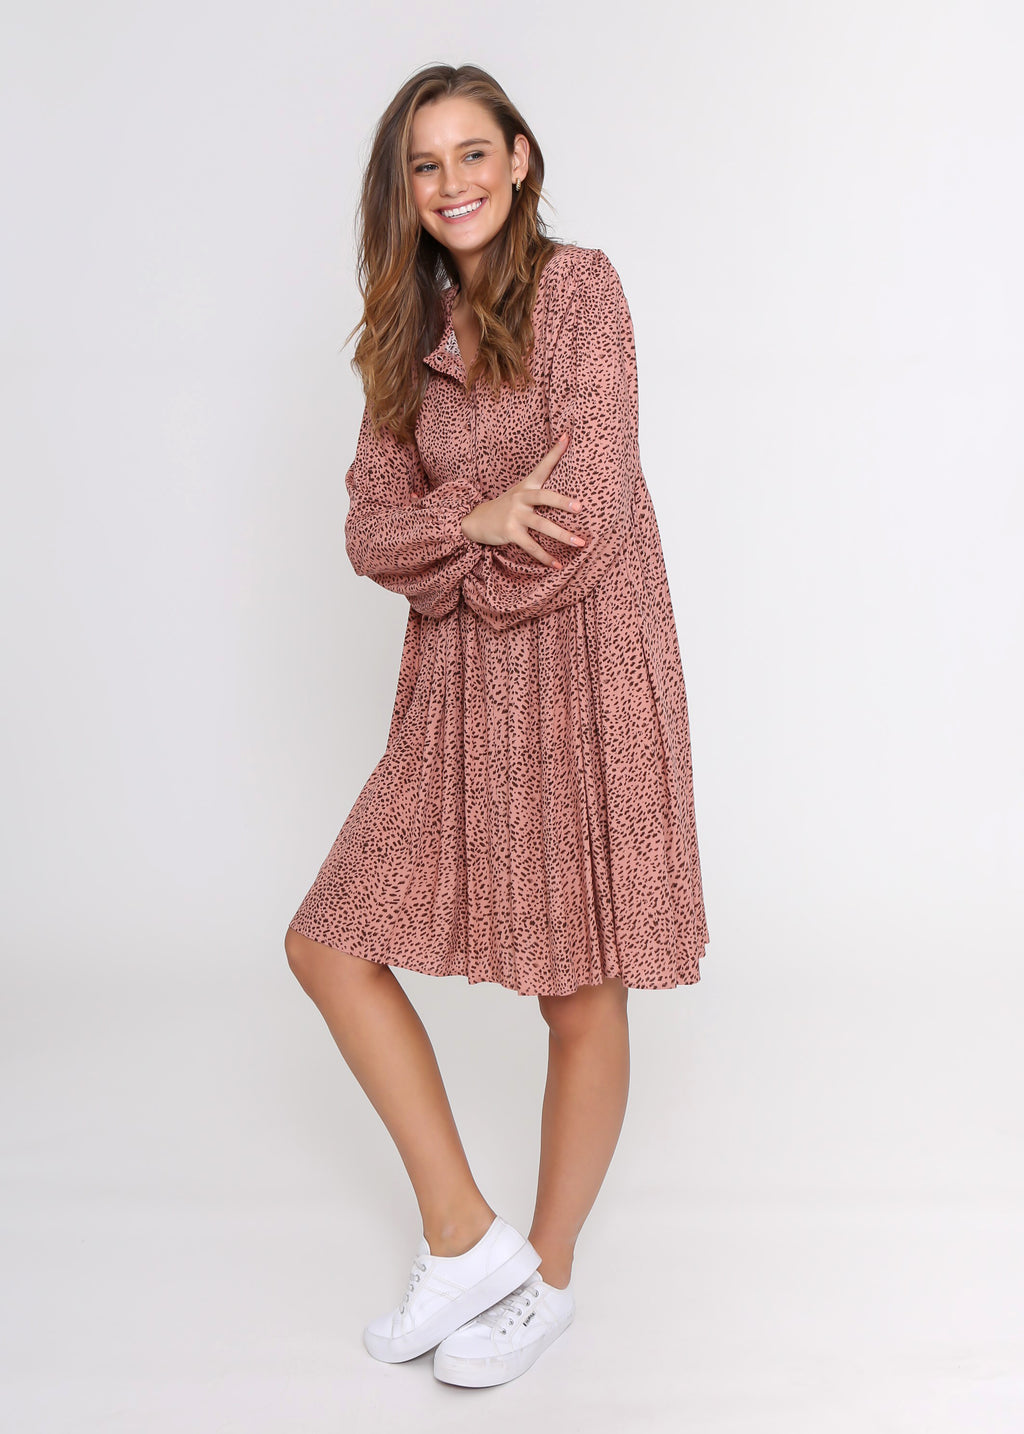 MASON DRESS - BLUSH LEOPARD